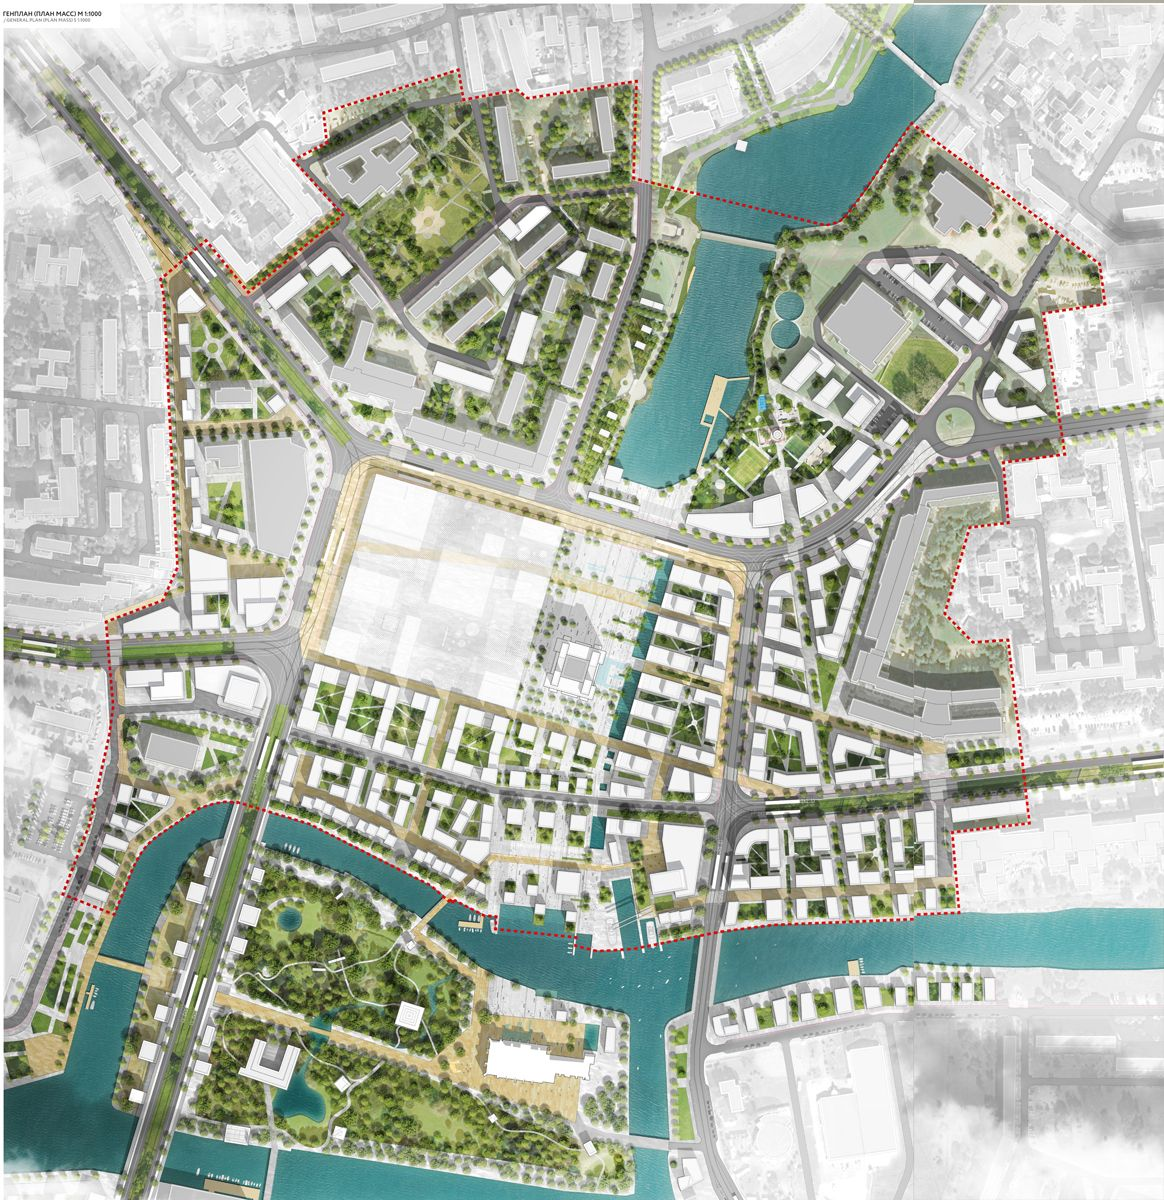 City of kaliningrad devillers associ s off the grid for Architecture design sites